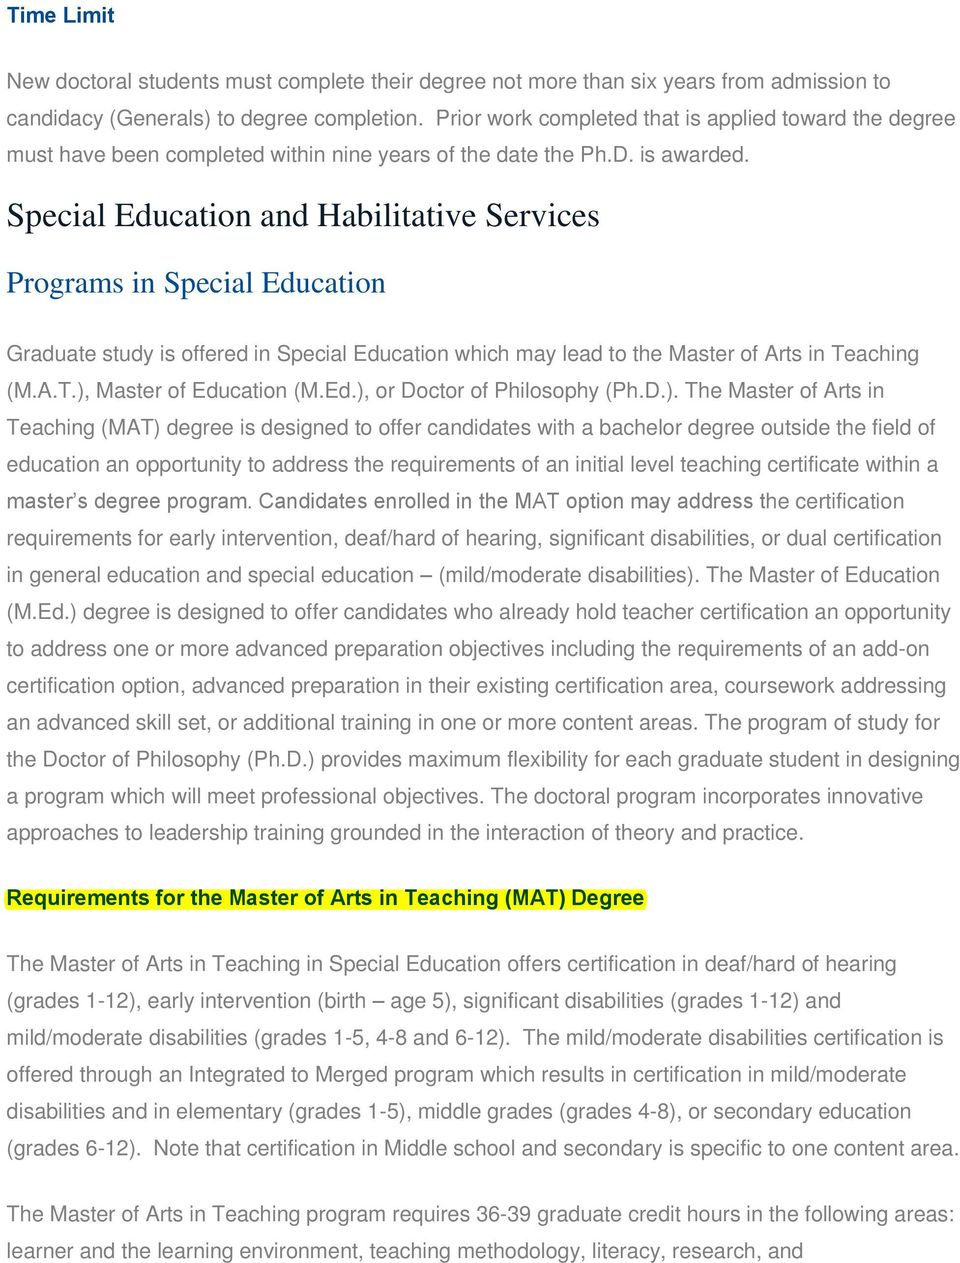 Special Education and Habilitative Services Programs in Special Education Graduate study is offered in Special Education which may lead to the Master of Arts in Teaching (M.A.T.), Master of Education (M.